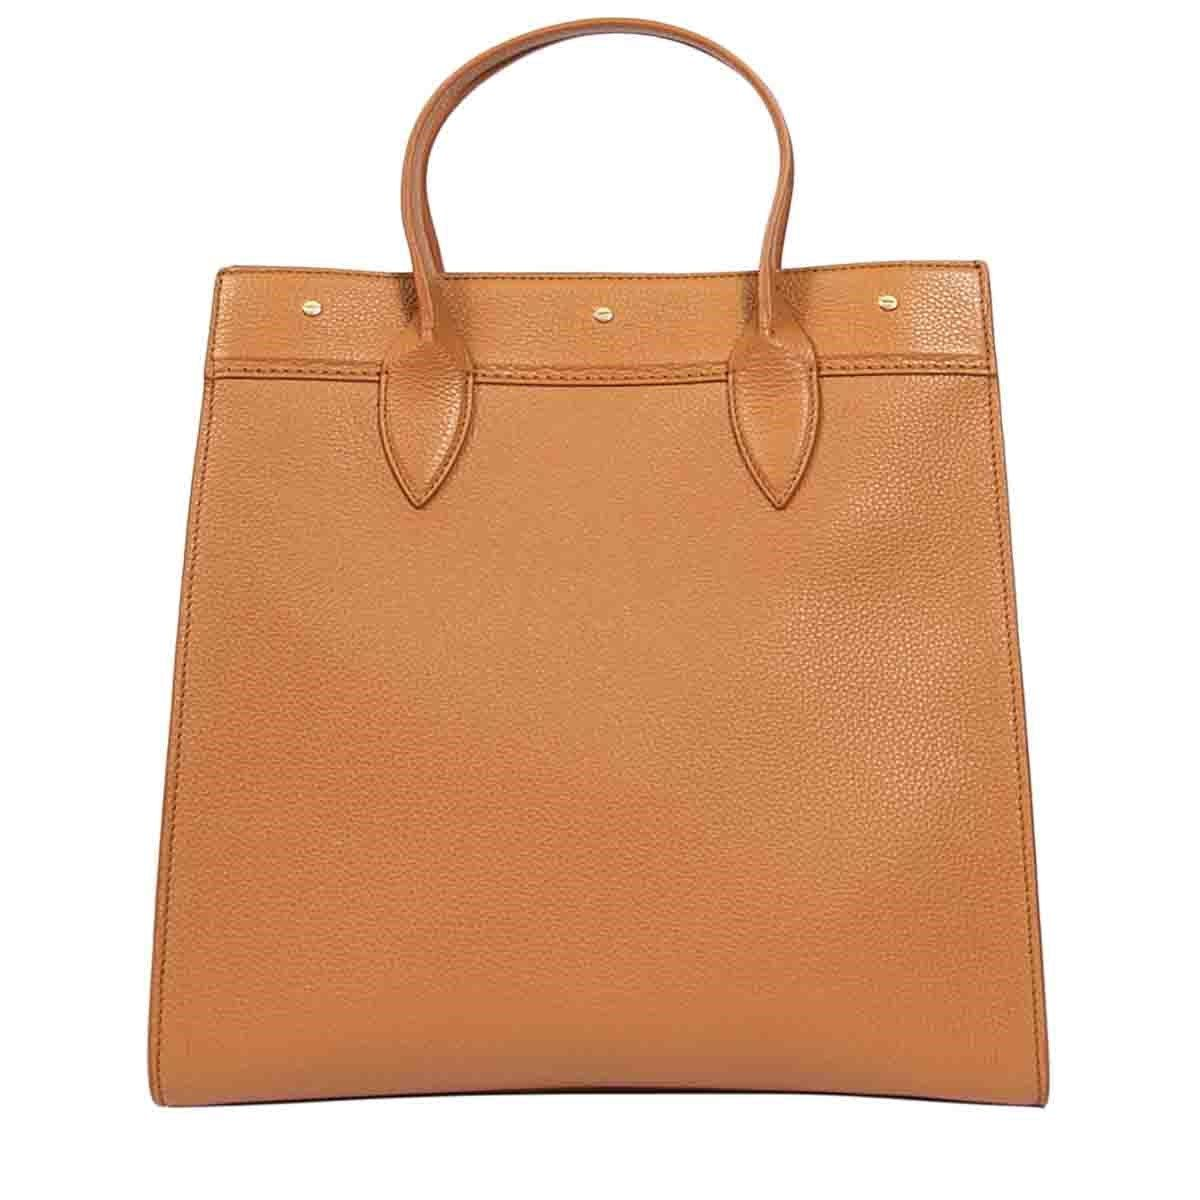 Borbonese BORBONESE WOMEN'S BROWN LEATHER HANDBAG